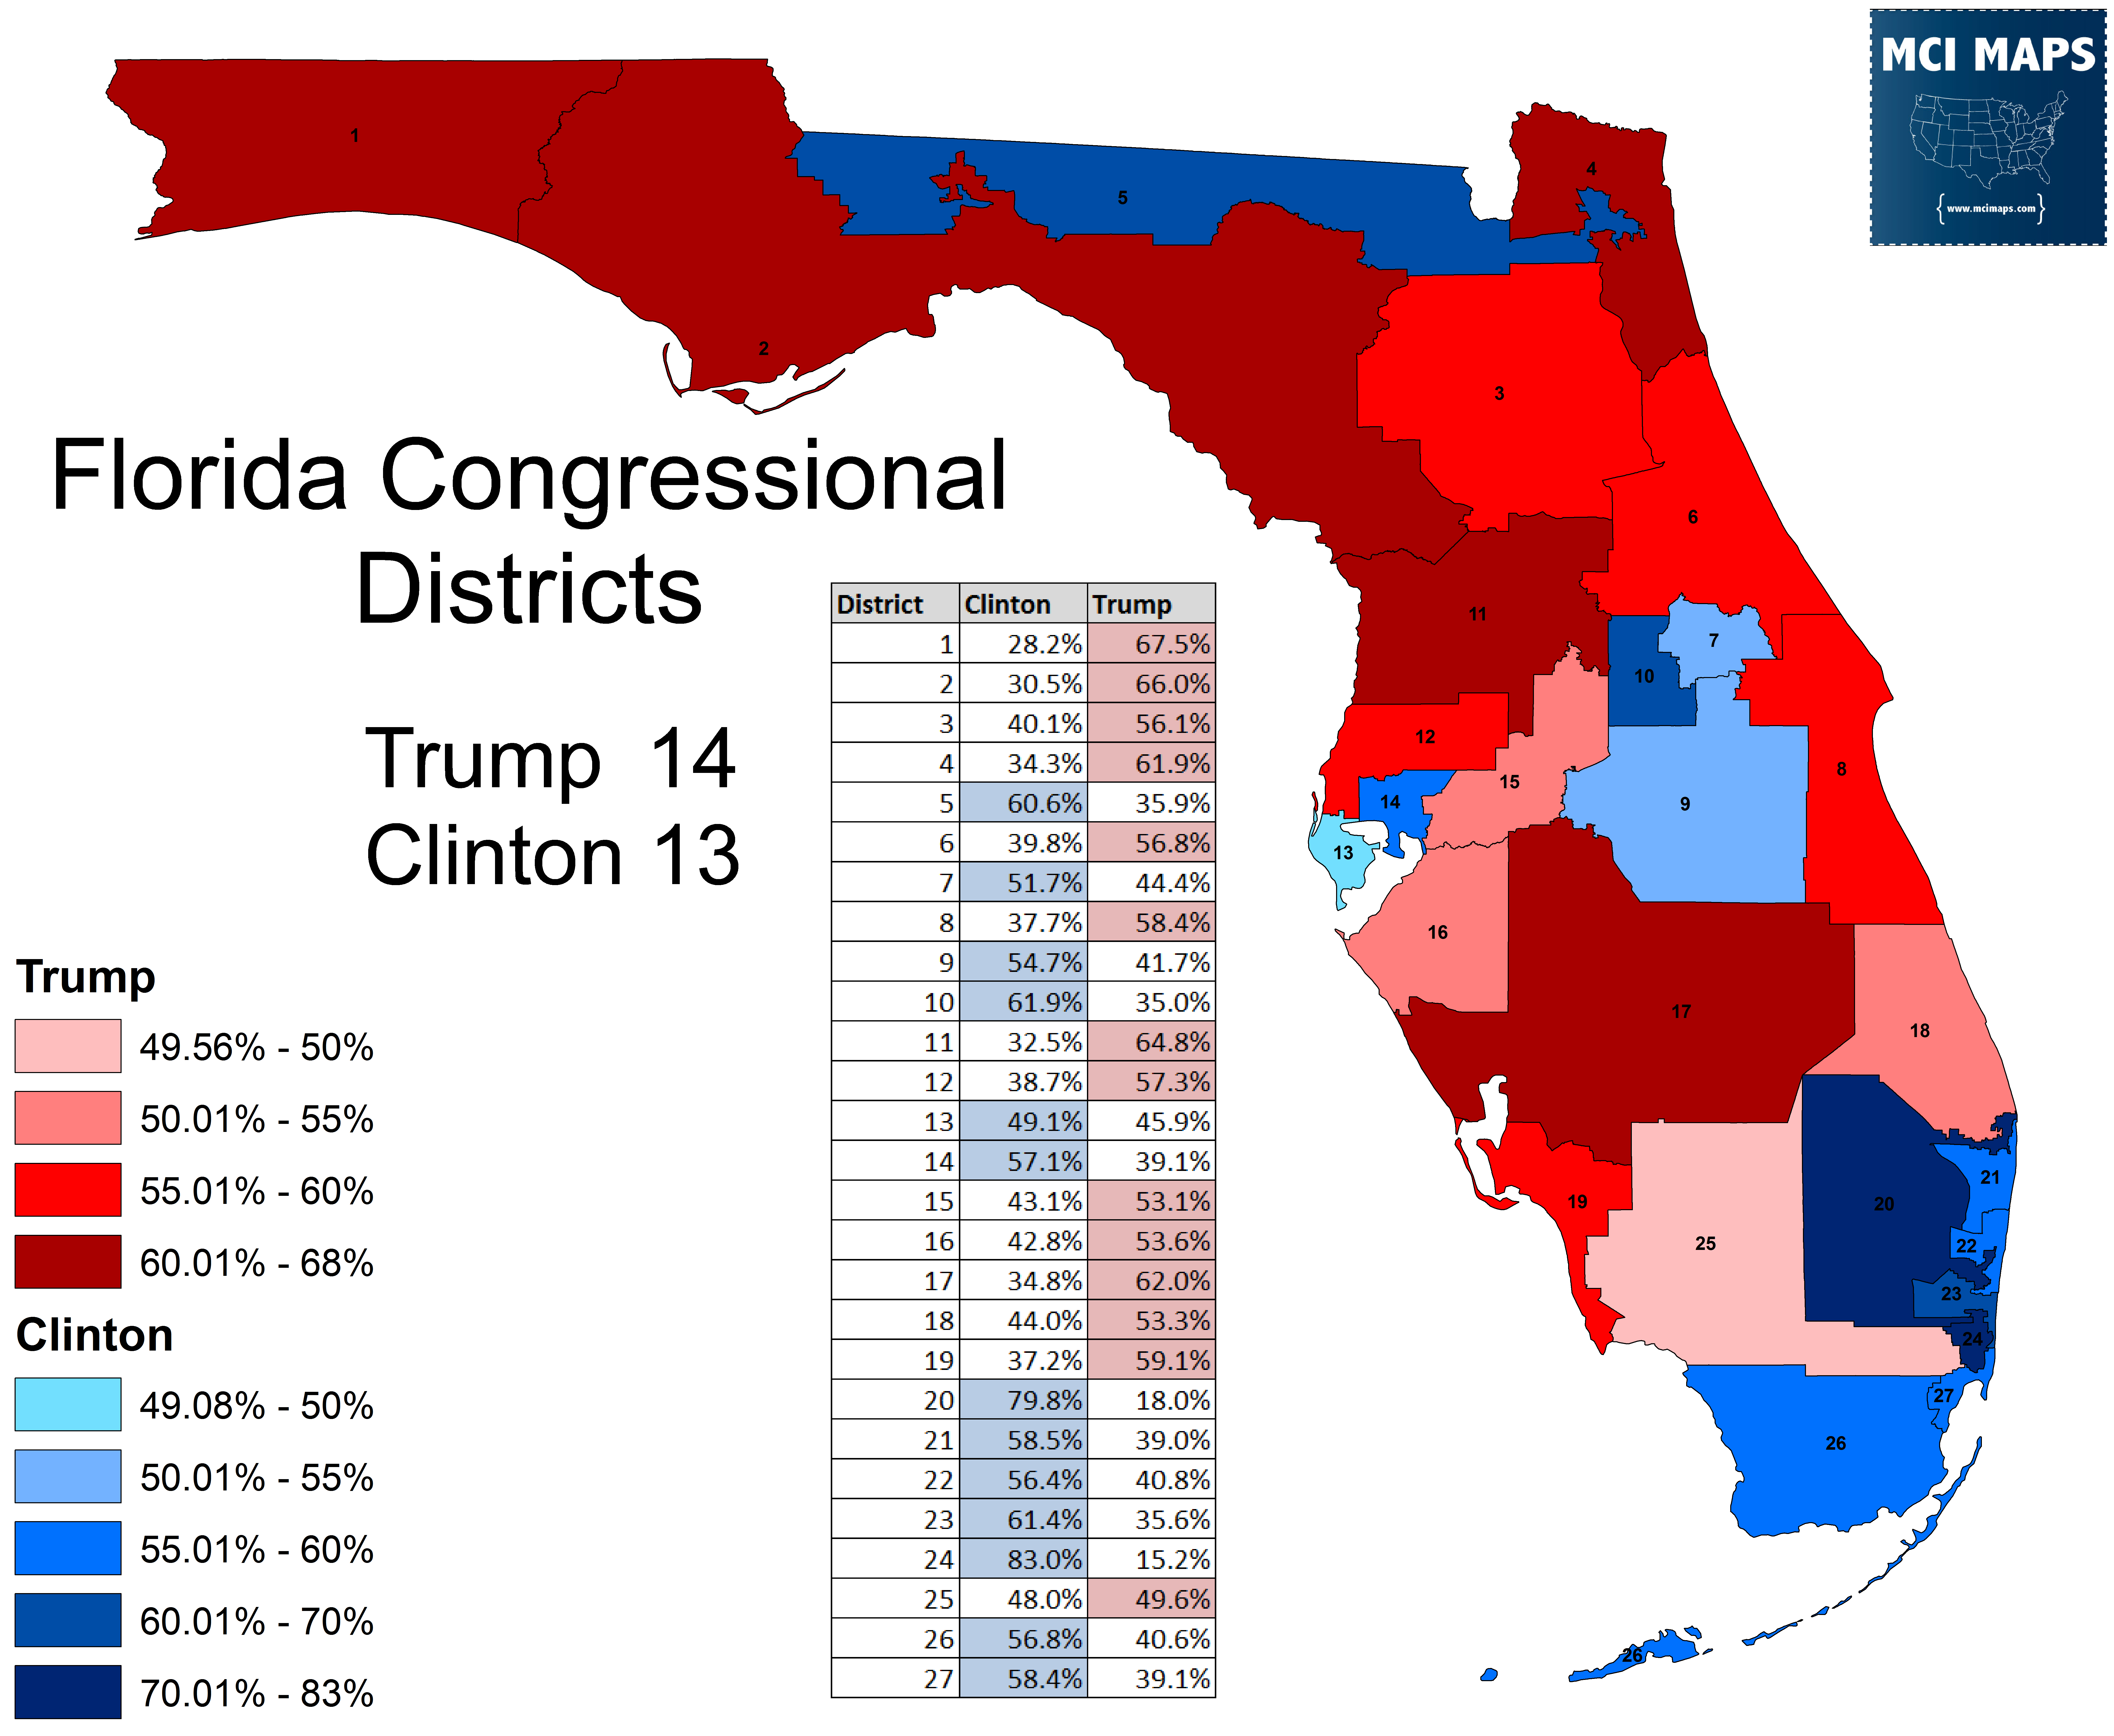 Florida's Congressional District Rankings For 2018 – Mci Maps - Florida State Representatives Map